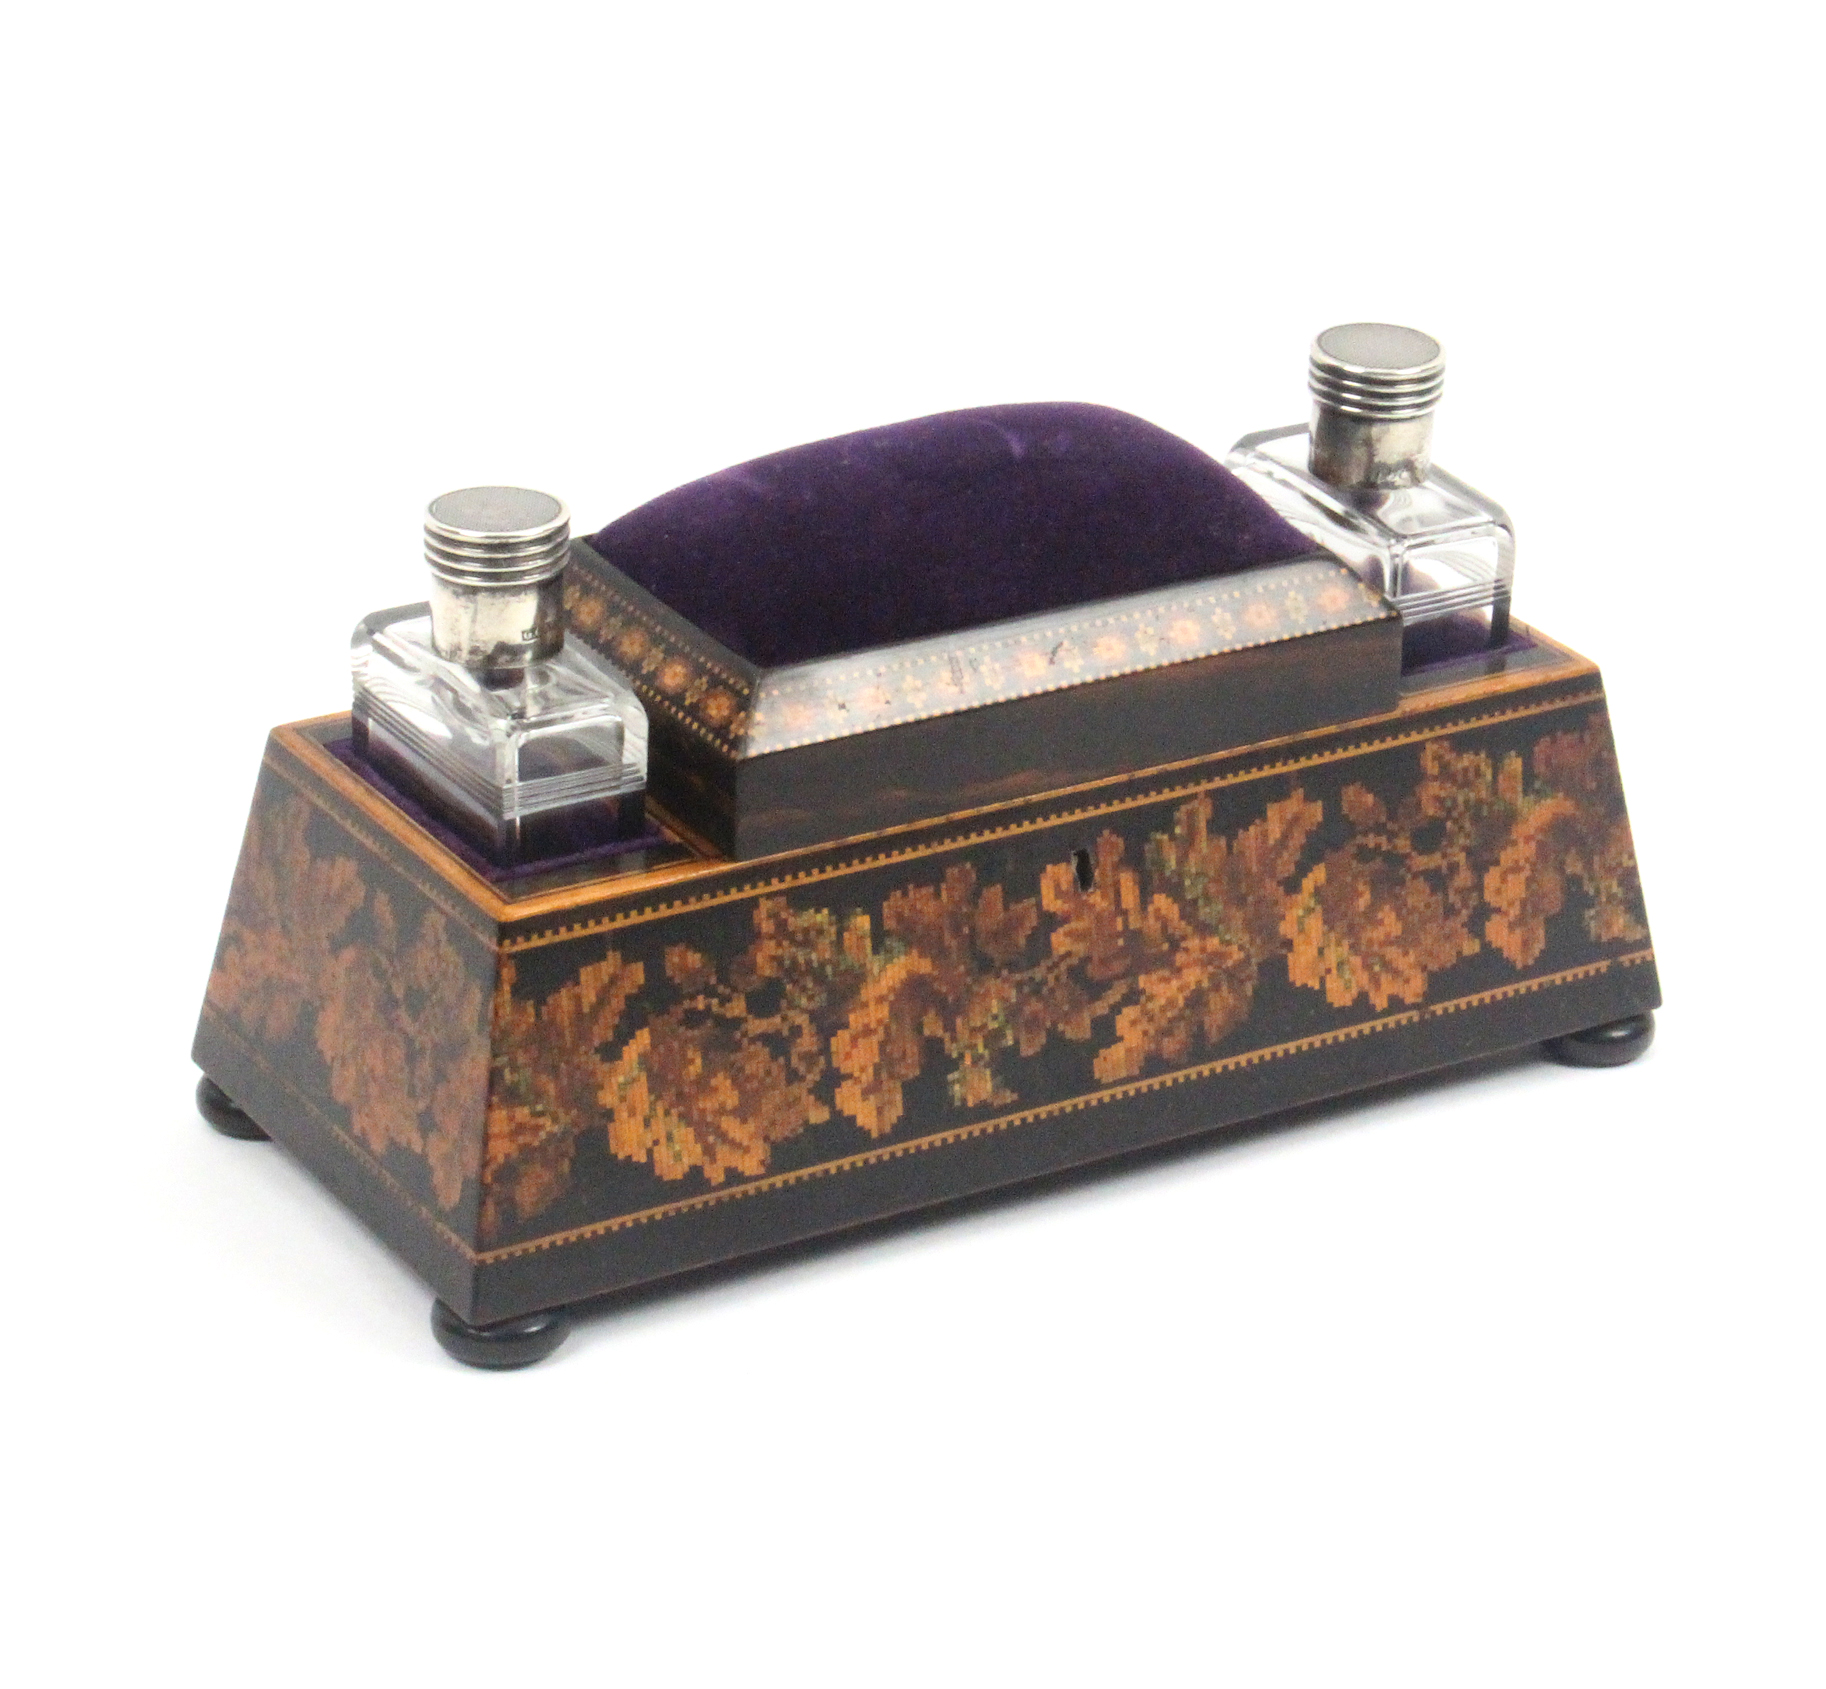 Lot 41 - A Tunbridge ware dressing table box by Thomas Barton the sloping sides raised on bun feet and with a